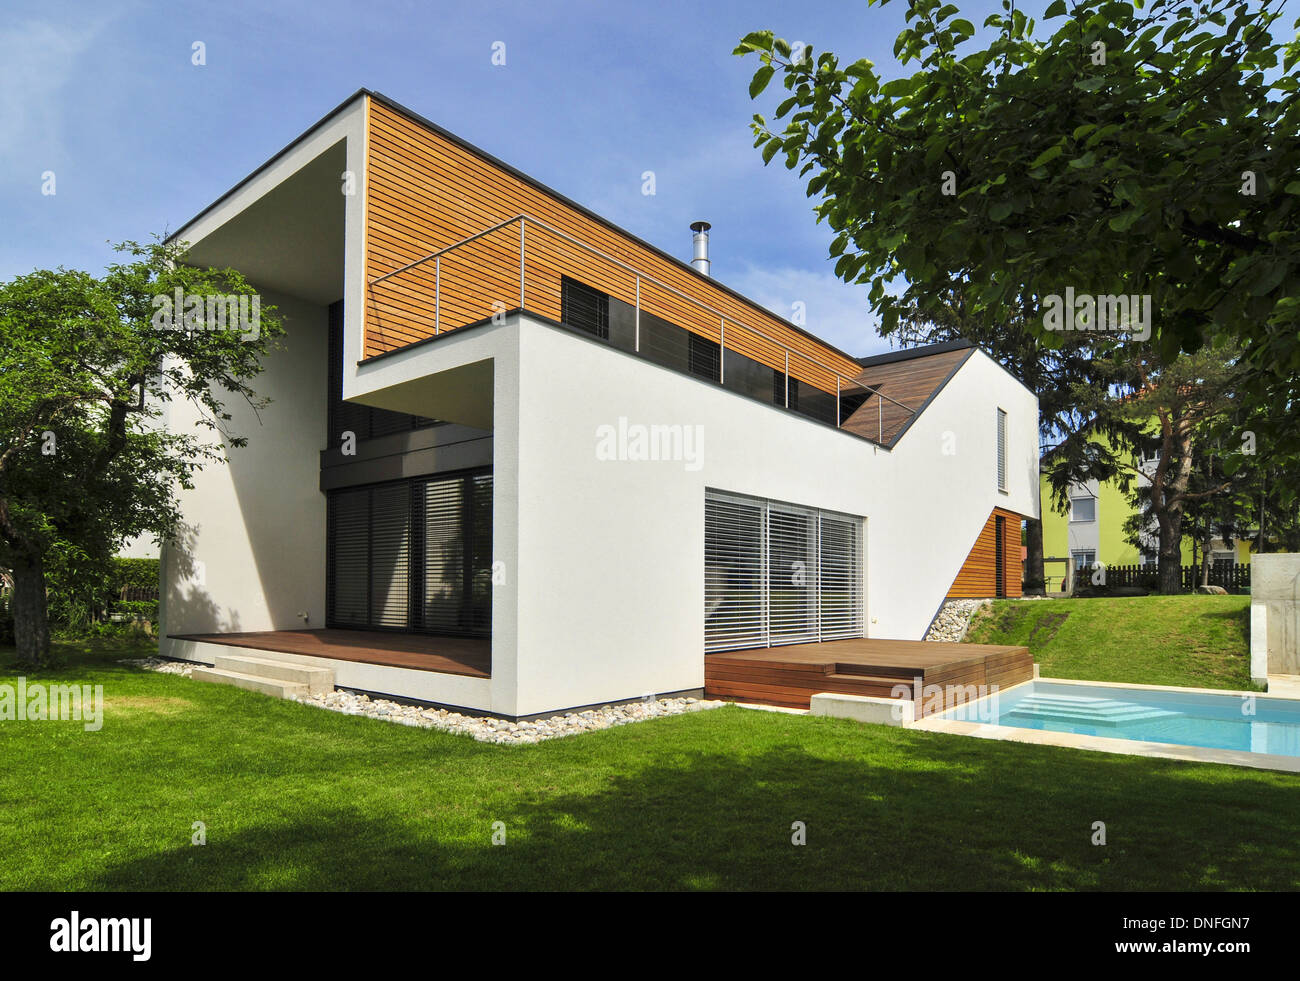 Holzhaus Wohnhaus Holzhaus Stock Photos Holzhaus Stock Images Alamy